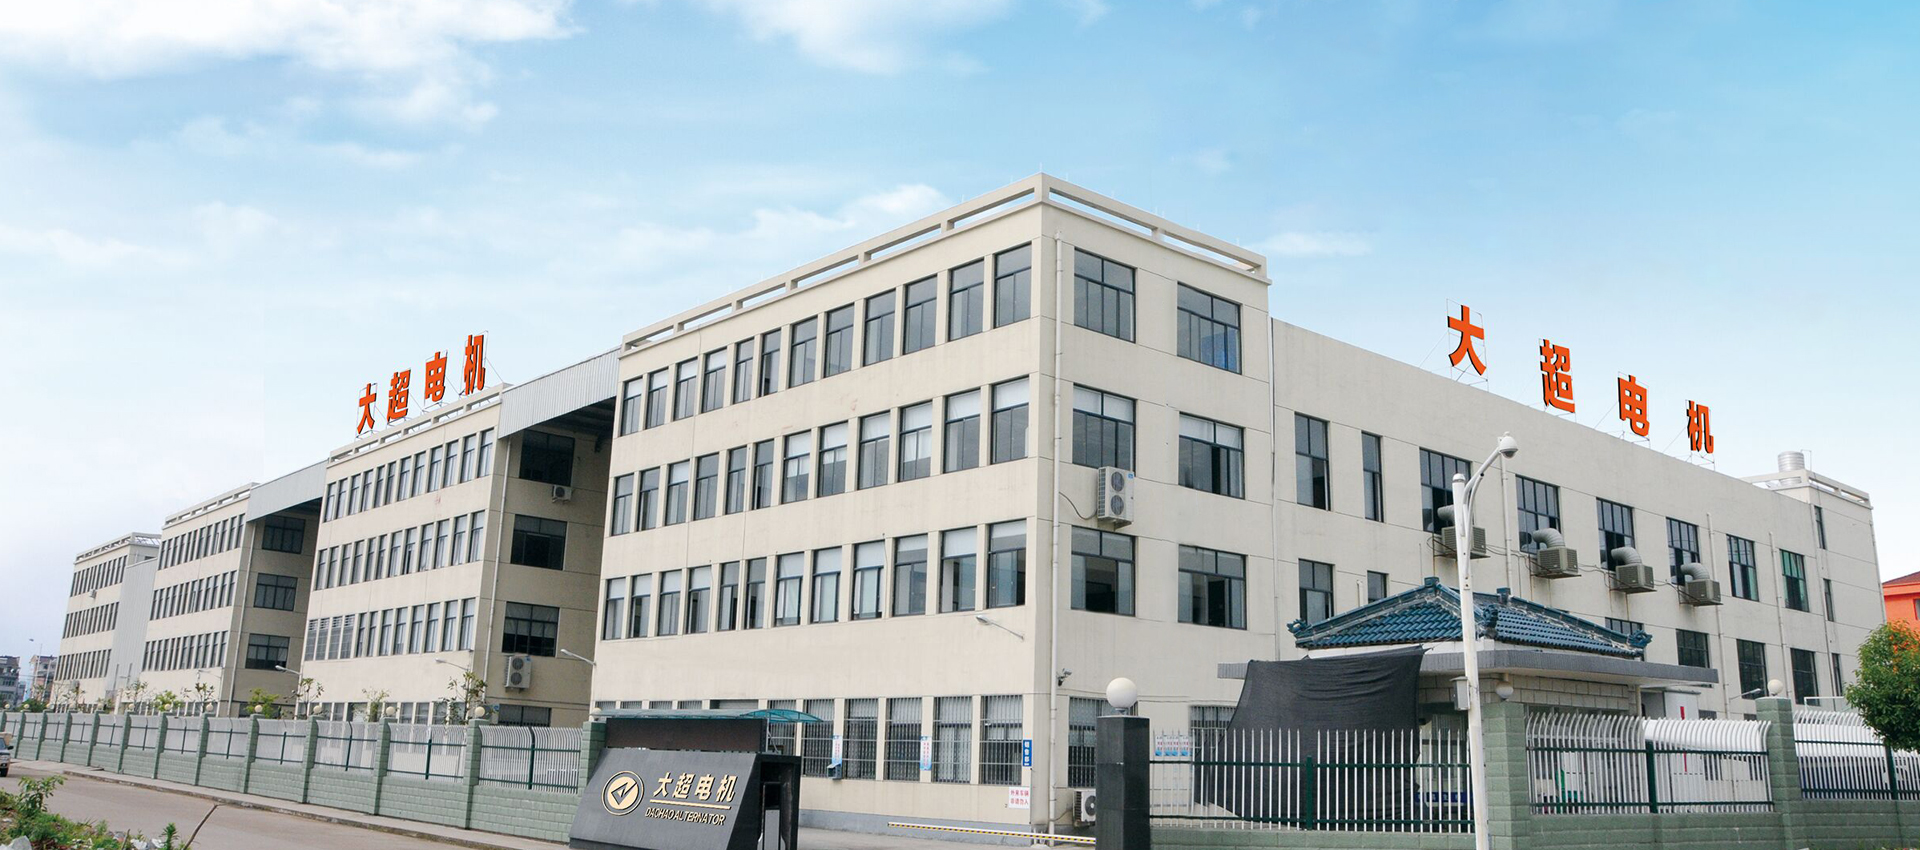 Zhejiang Dachao Industry and Trade Co., Ltd